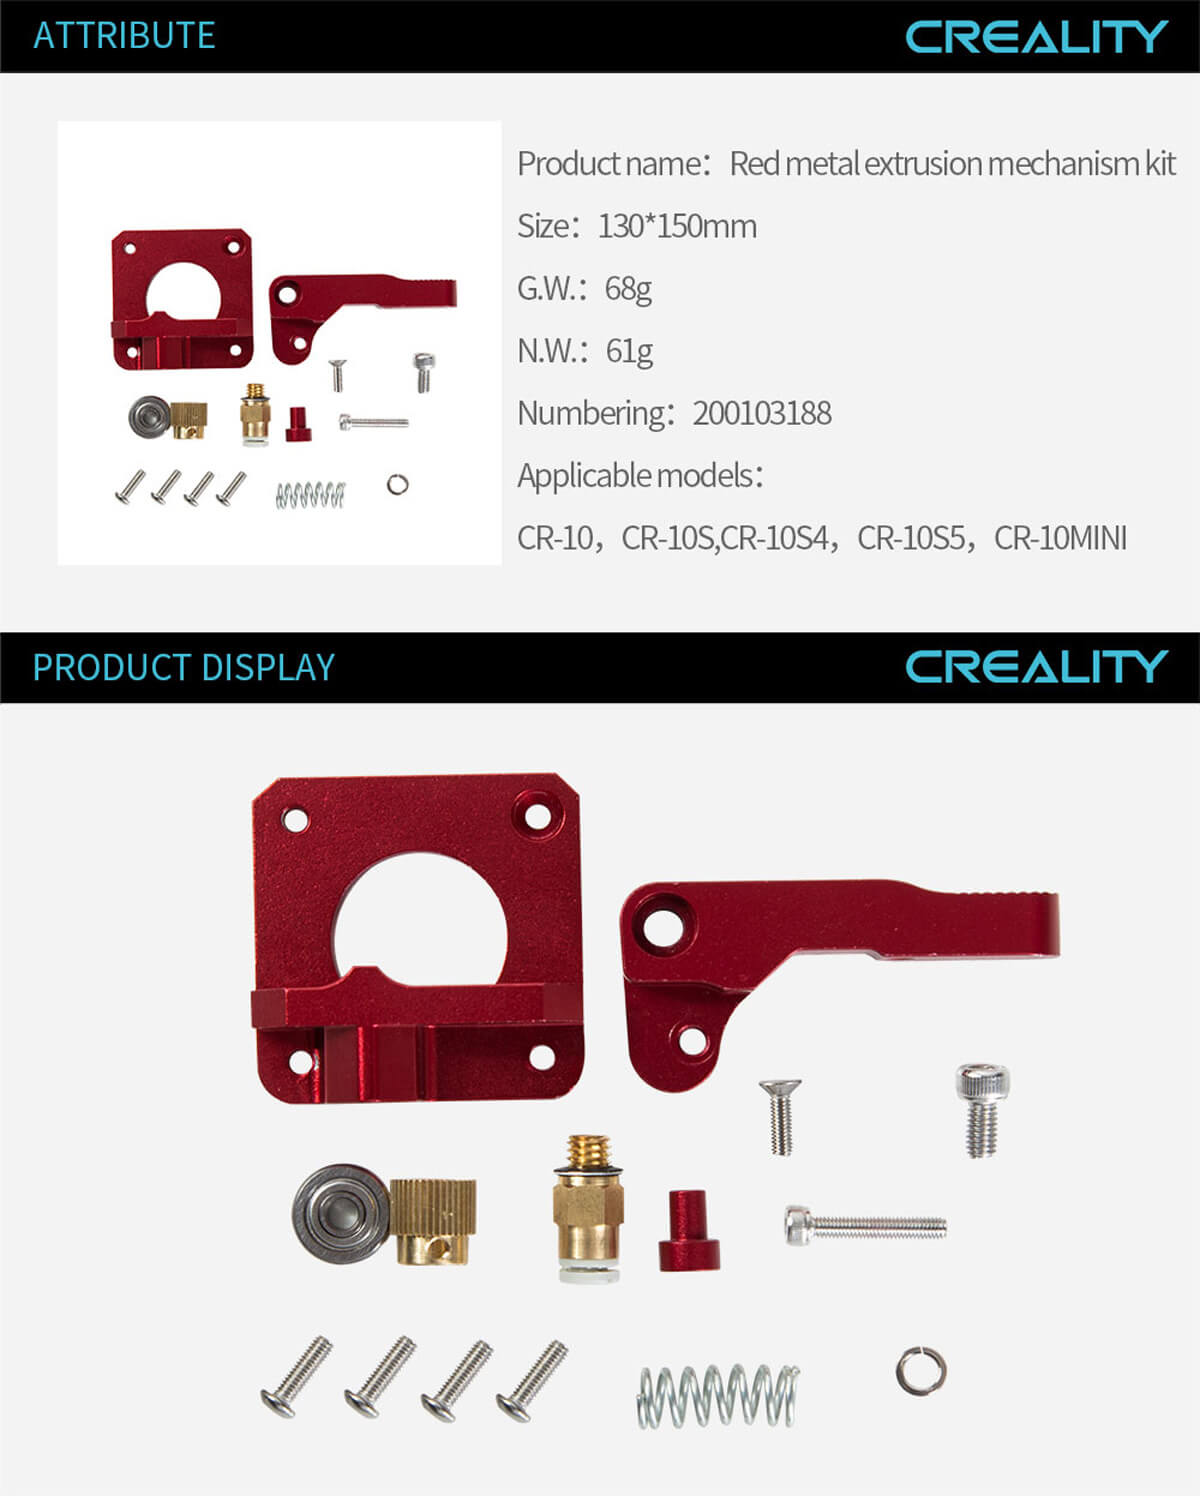 creality-3d-printer-Red-Metal-Extrusion-Mechanism-Kit-11